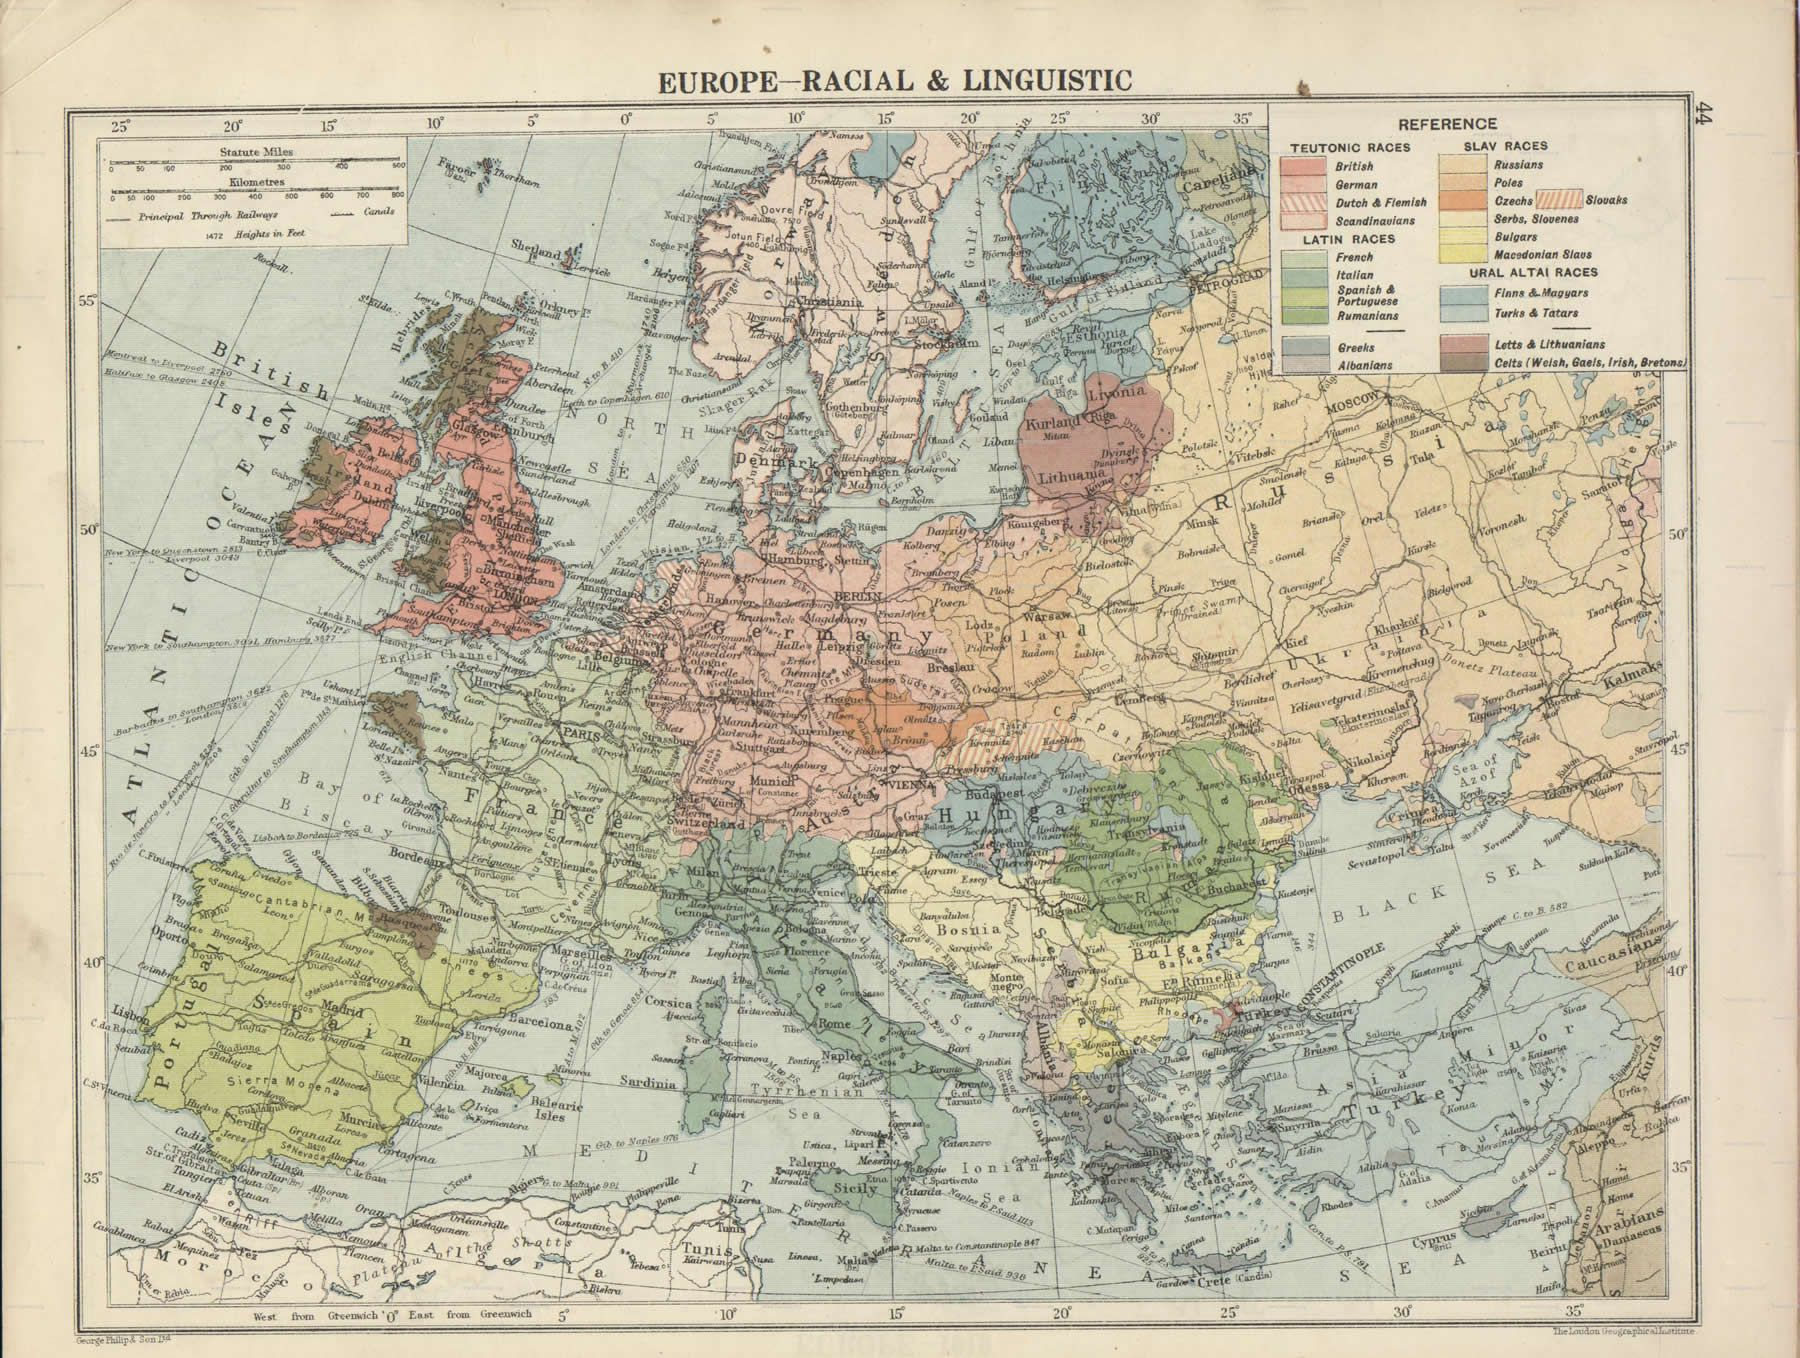 Map Europe u2013 racial and linguistic 1920